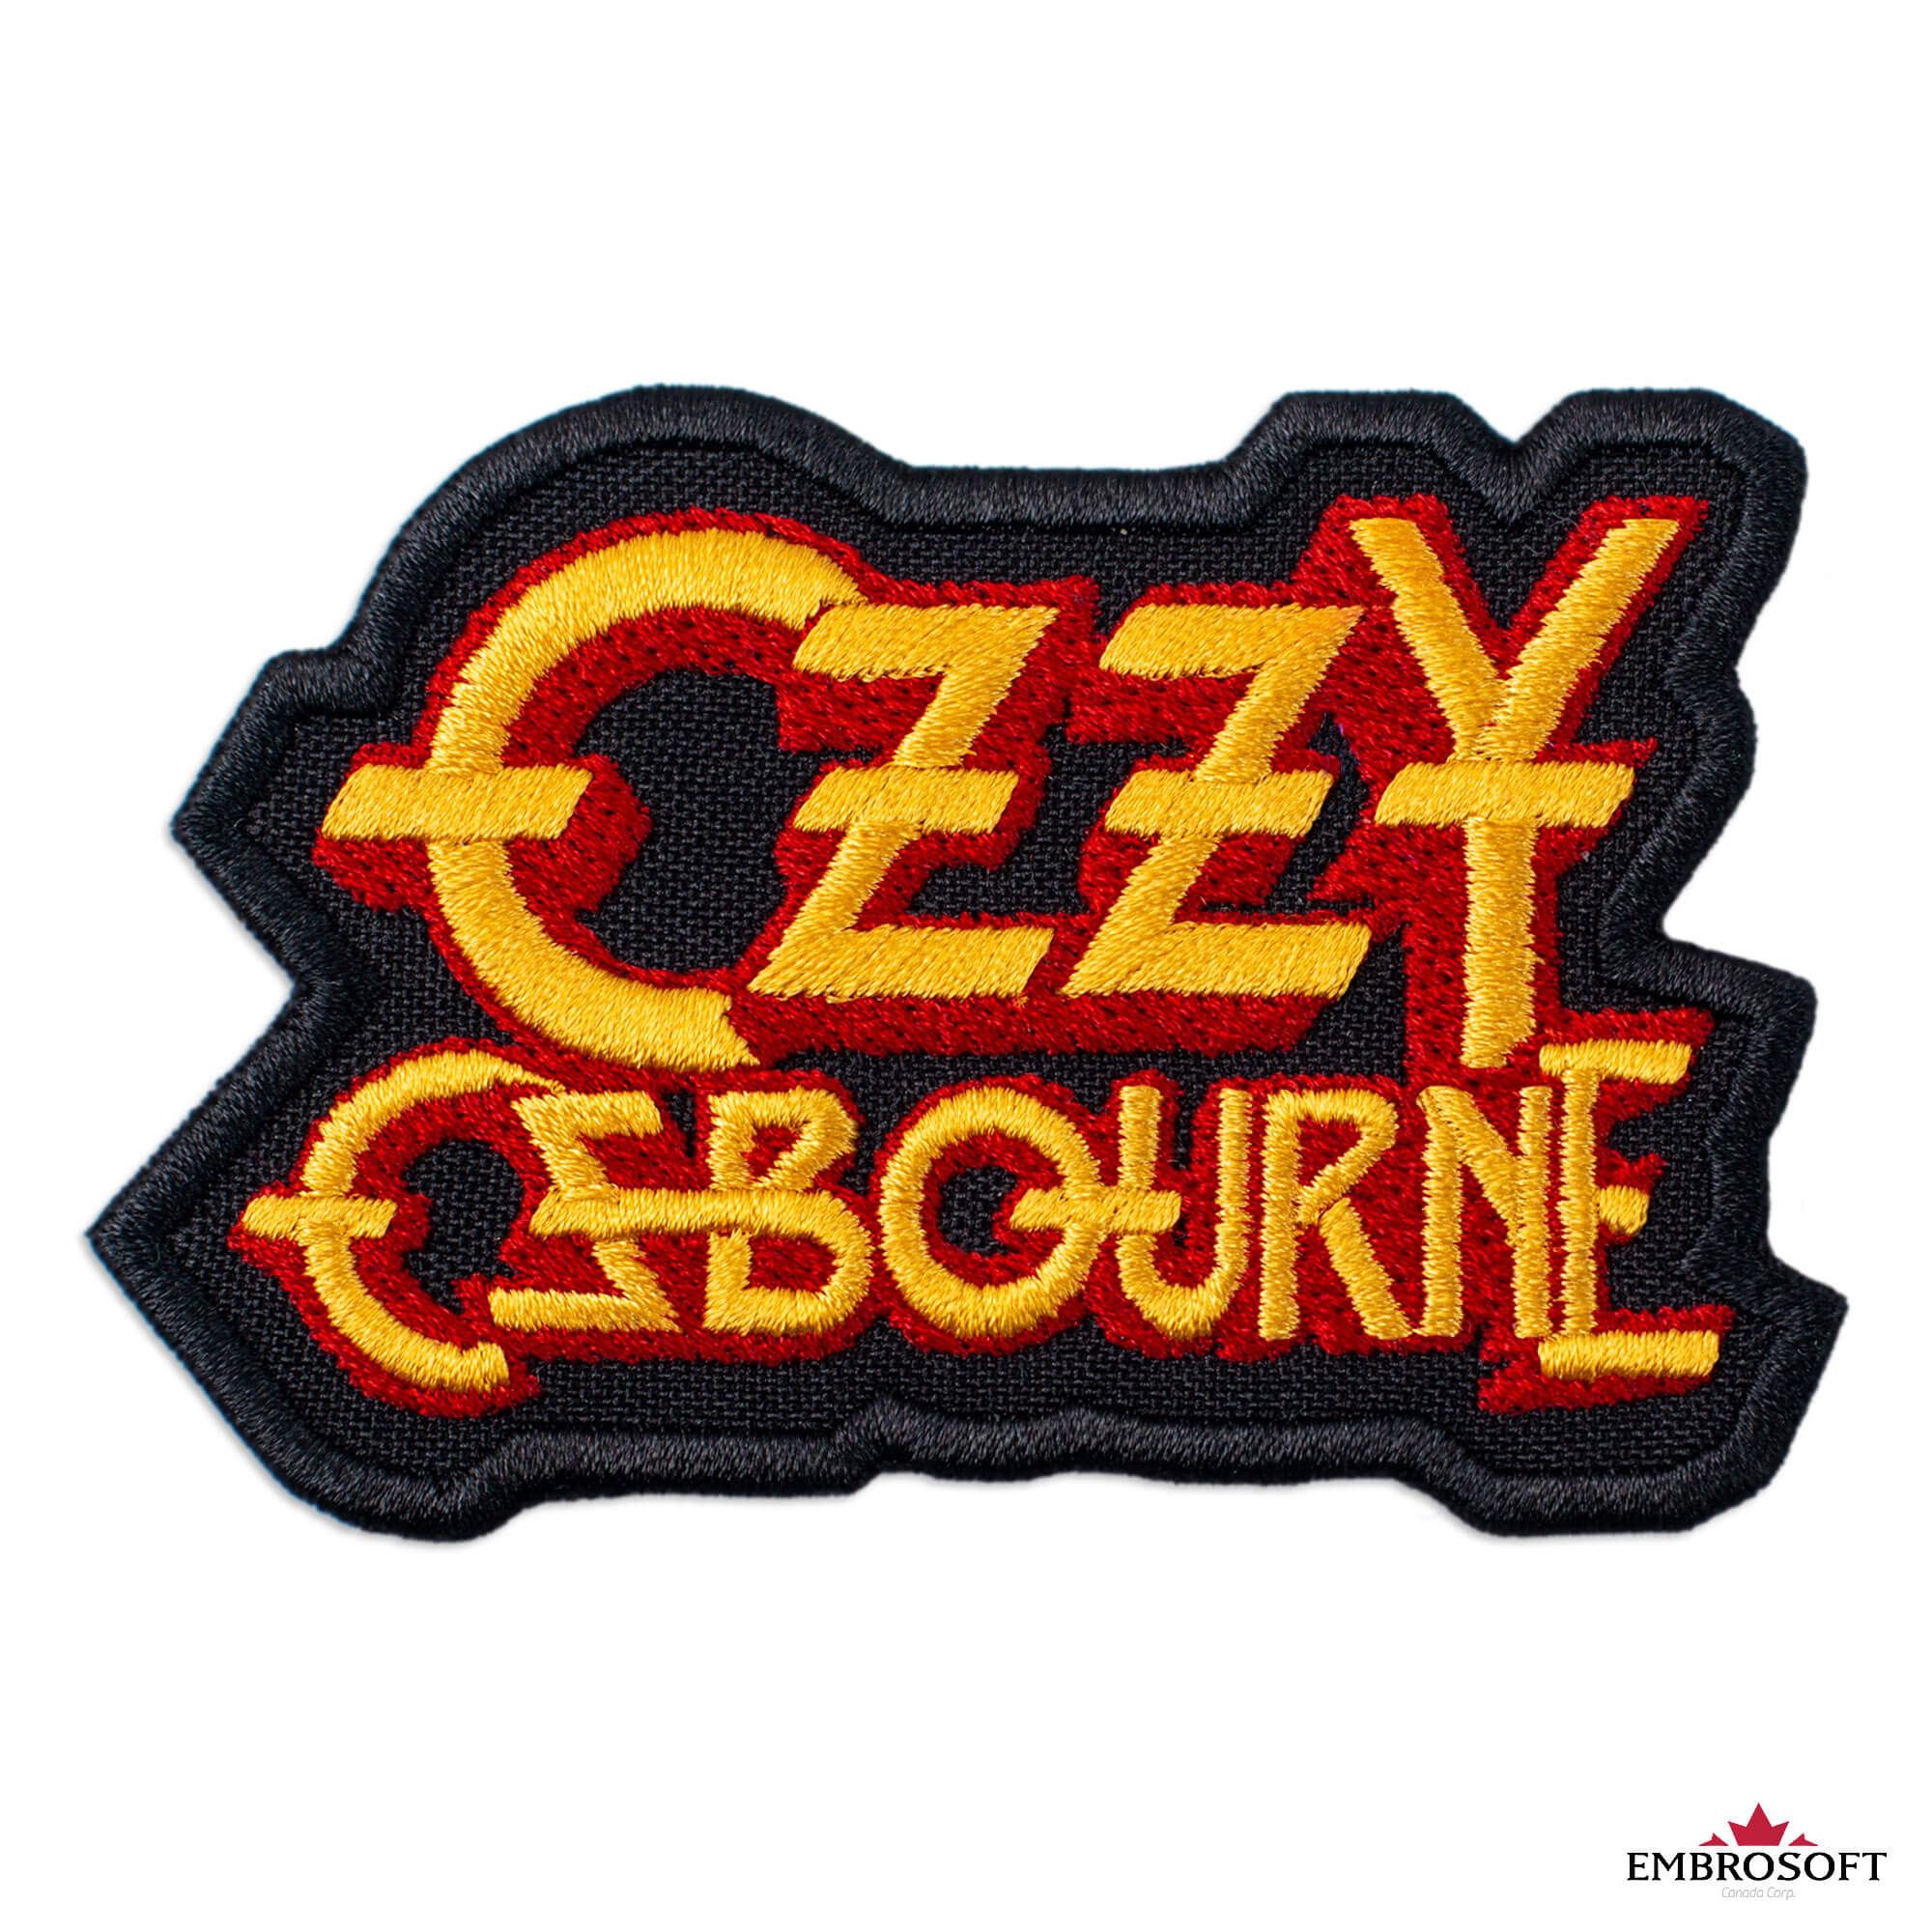 3.5 x 3.4 Crown Skull Heavy Metal Band//Embroidered//Iron On Ozzy Osbourne Patch Hard Rock